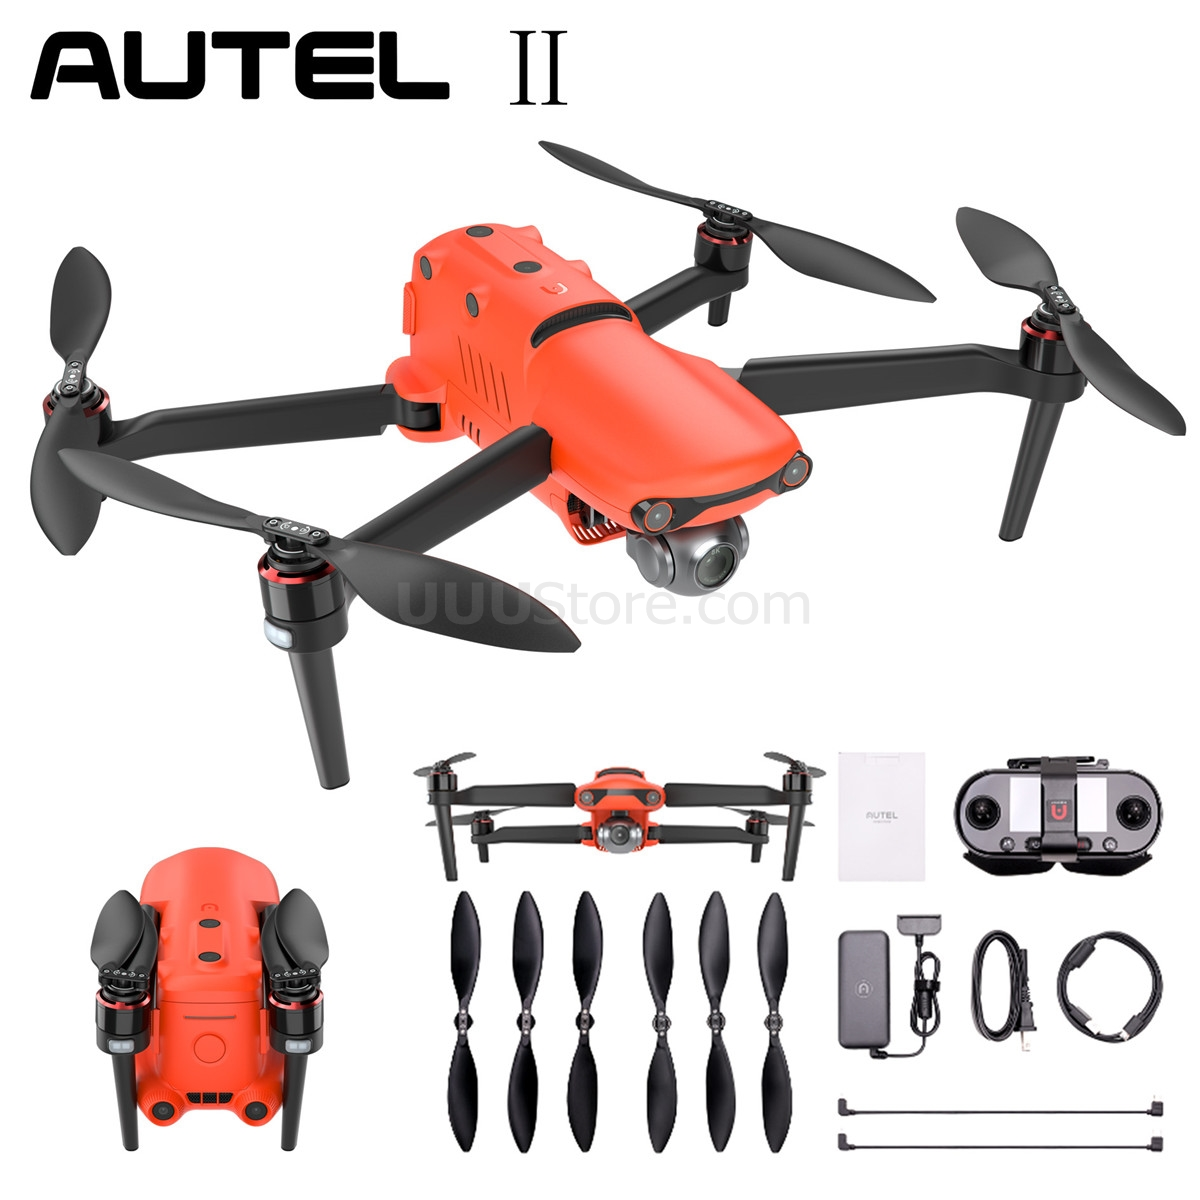 Autel Robotics EVO 2/ Pro / Dual 8K 6K FPV Drone 60fps Ultra HD Quadcopter Camera Video EVO 2 Pro 6K EVO Dual